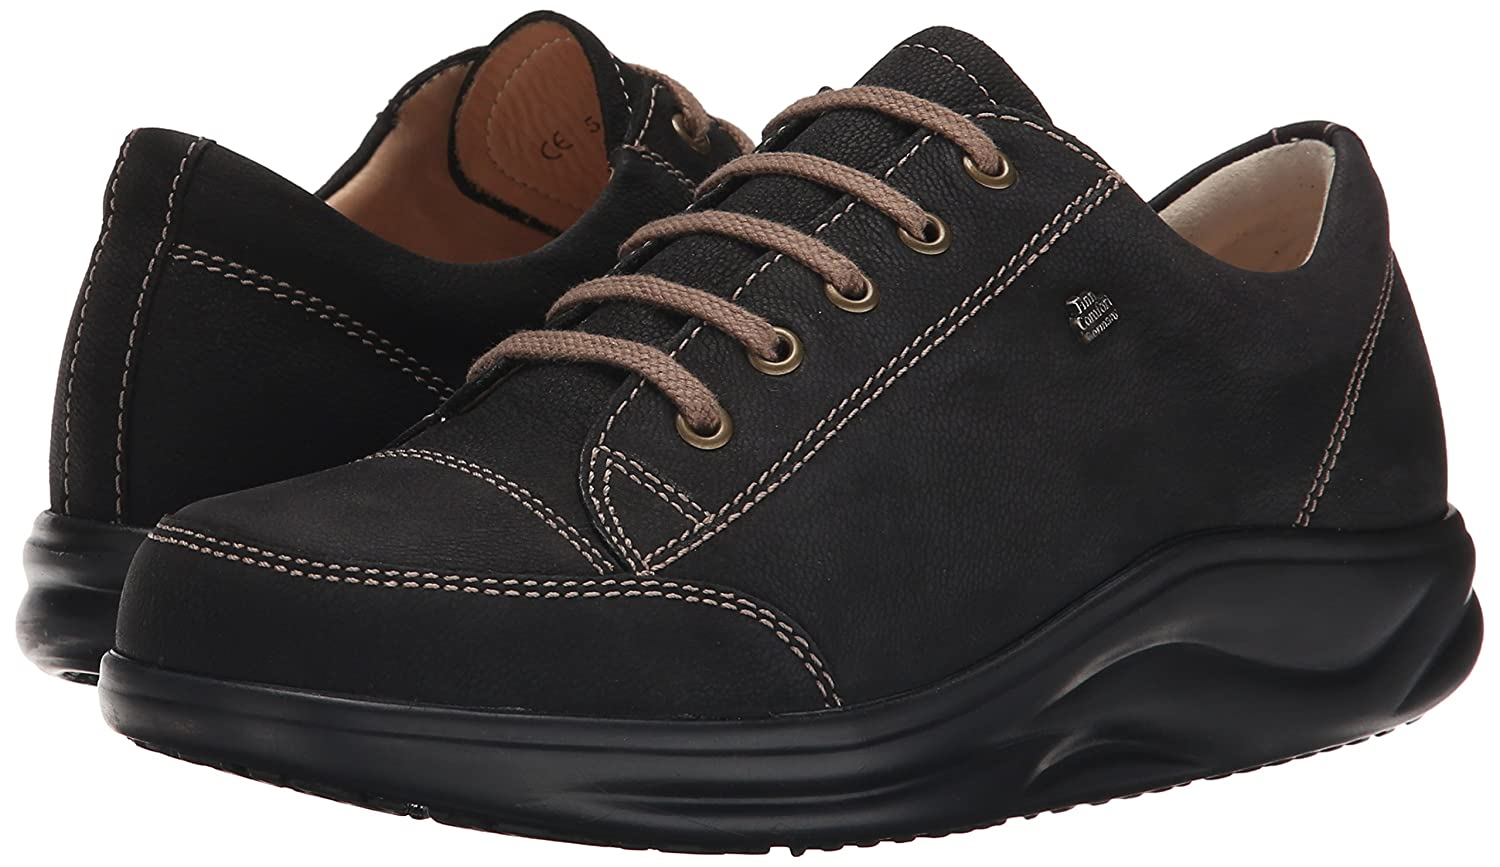 Finn Comfort Women's Ikebukuro Oxford B003DTLKWM 11  M US/ 8.5 UK|Black Rodeobuk